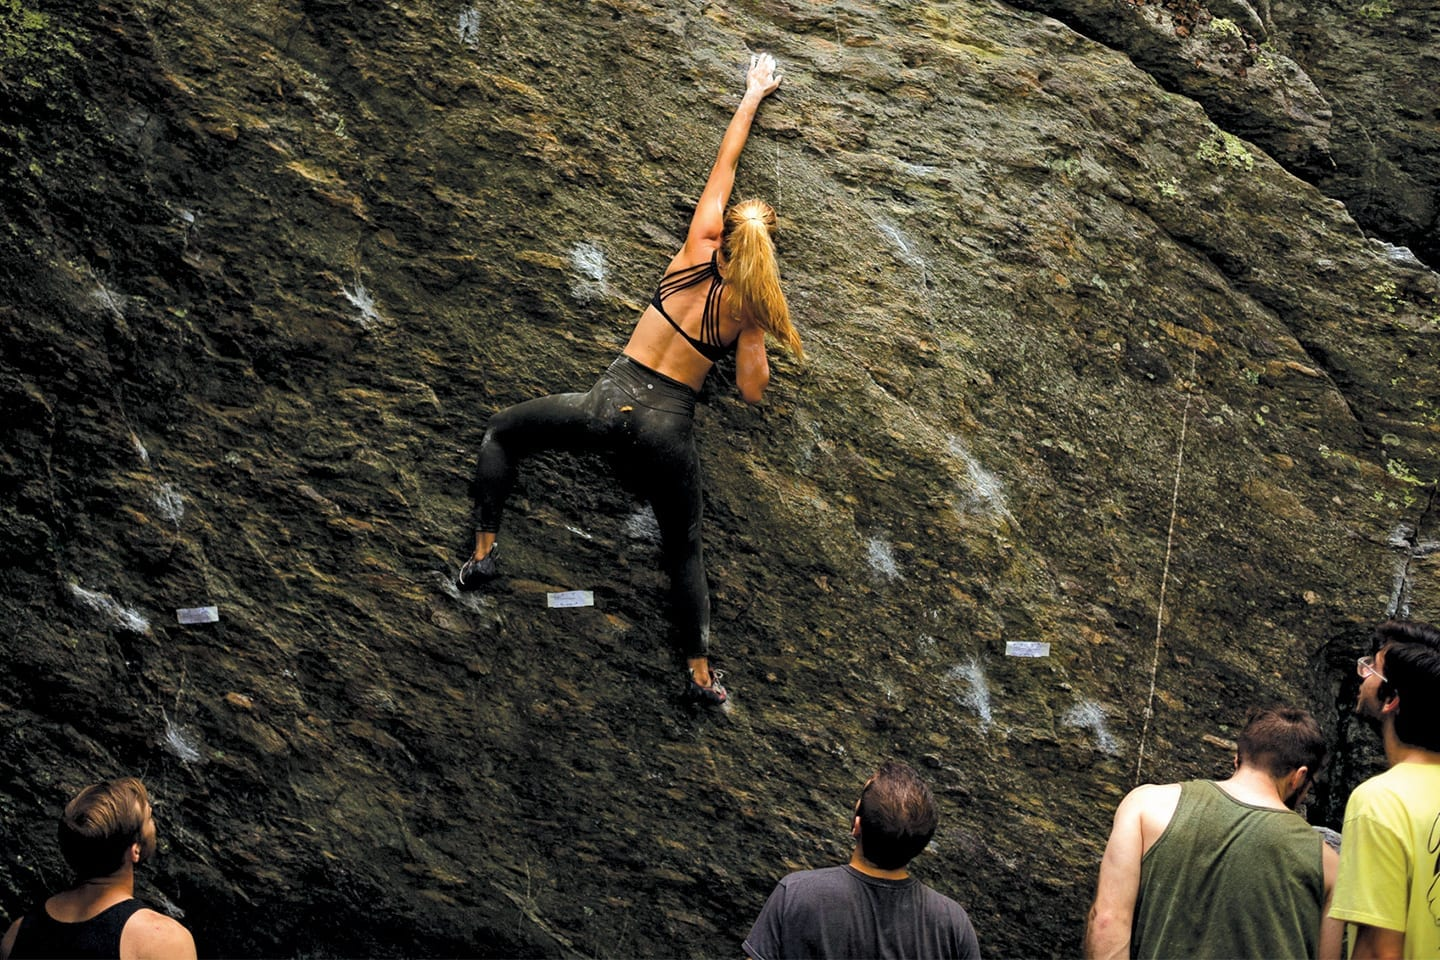 girl-climbing-outdoors.photo-by-Jacob-Reid-Wuertz.RightColumn1